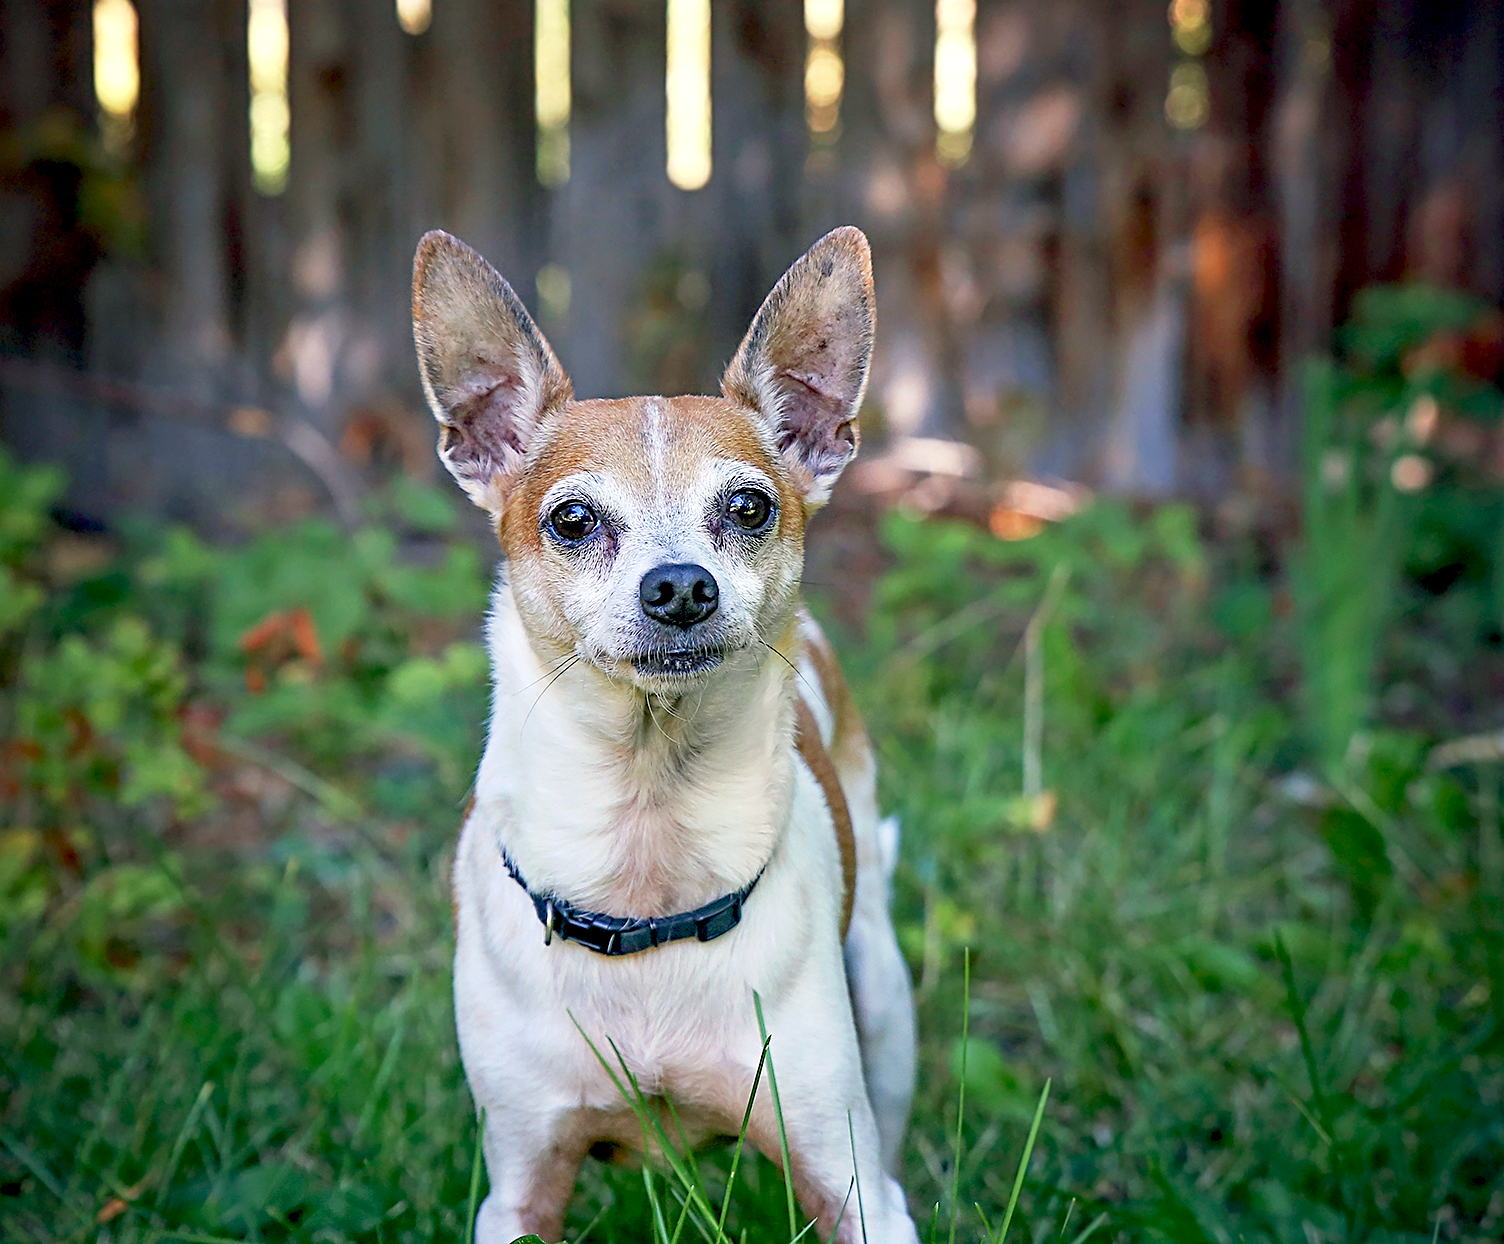 tan and white rat terrier standing in yard in front of wooden fence